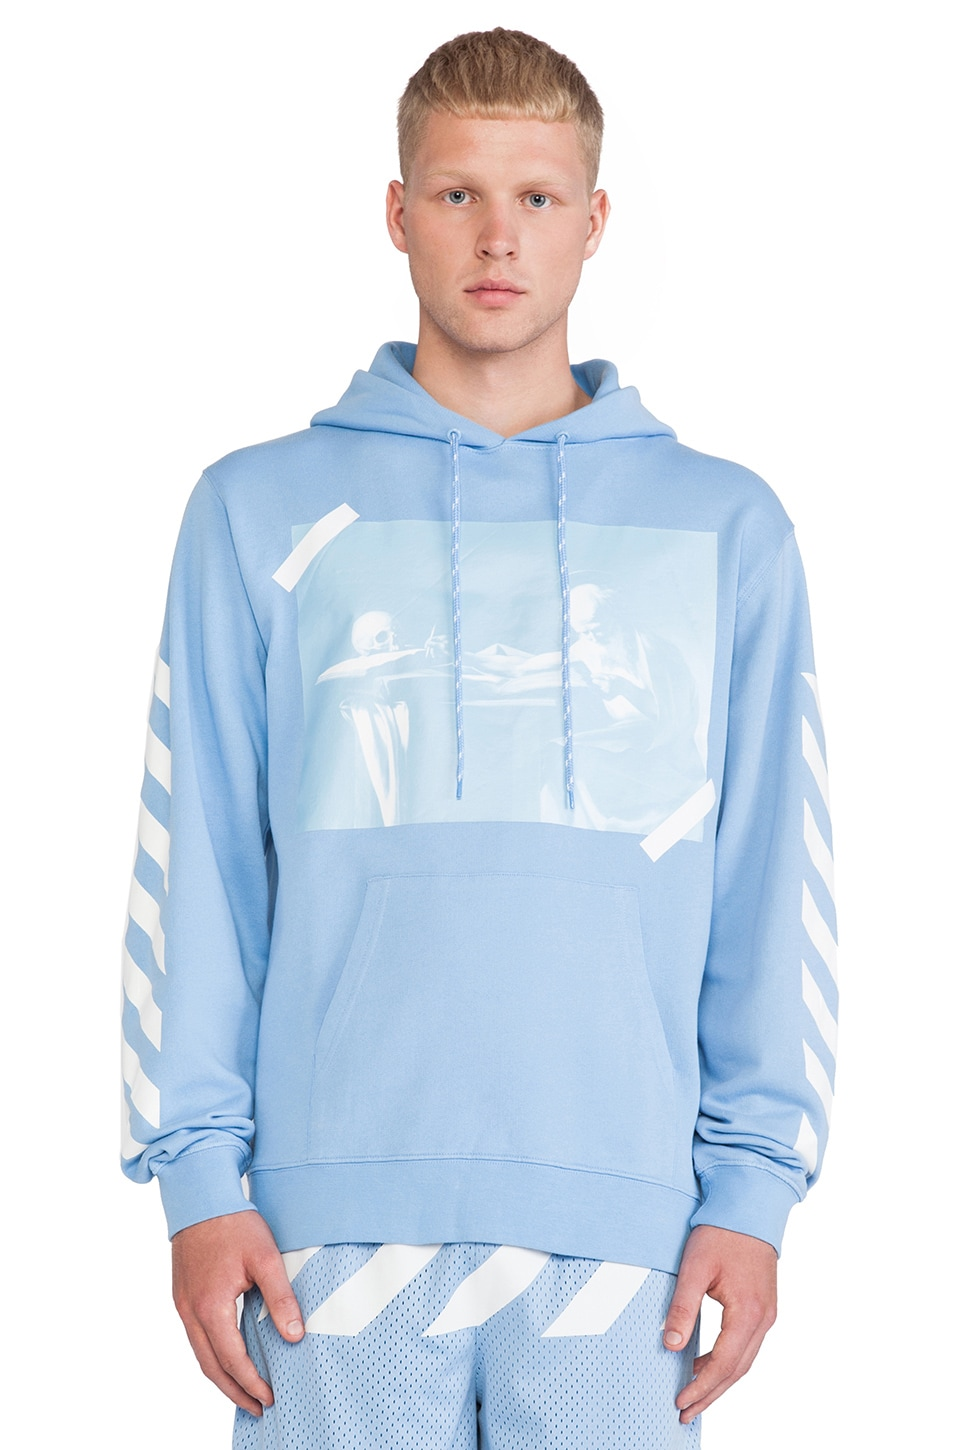 OFF-WHITE Graphic Hoodie in Blue